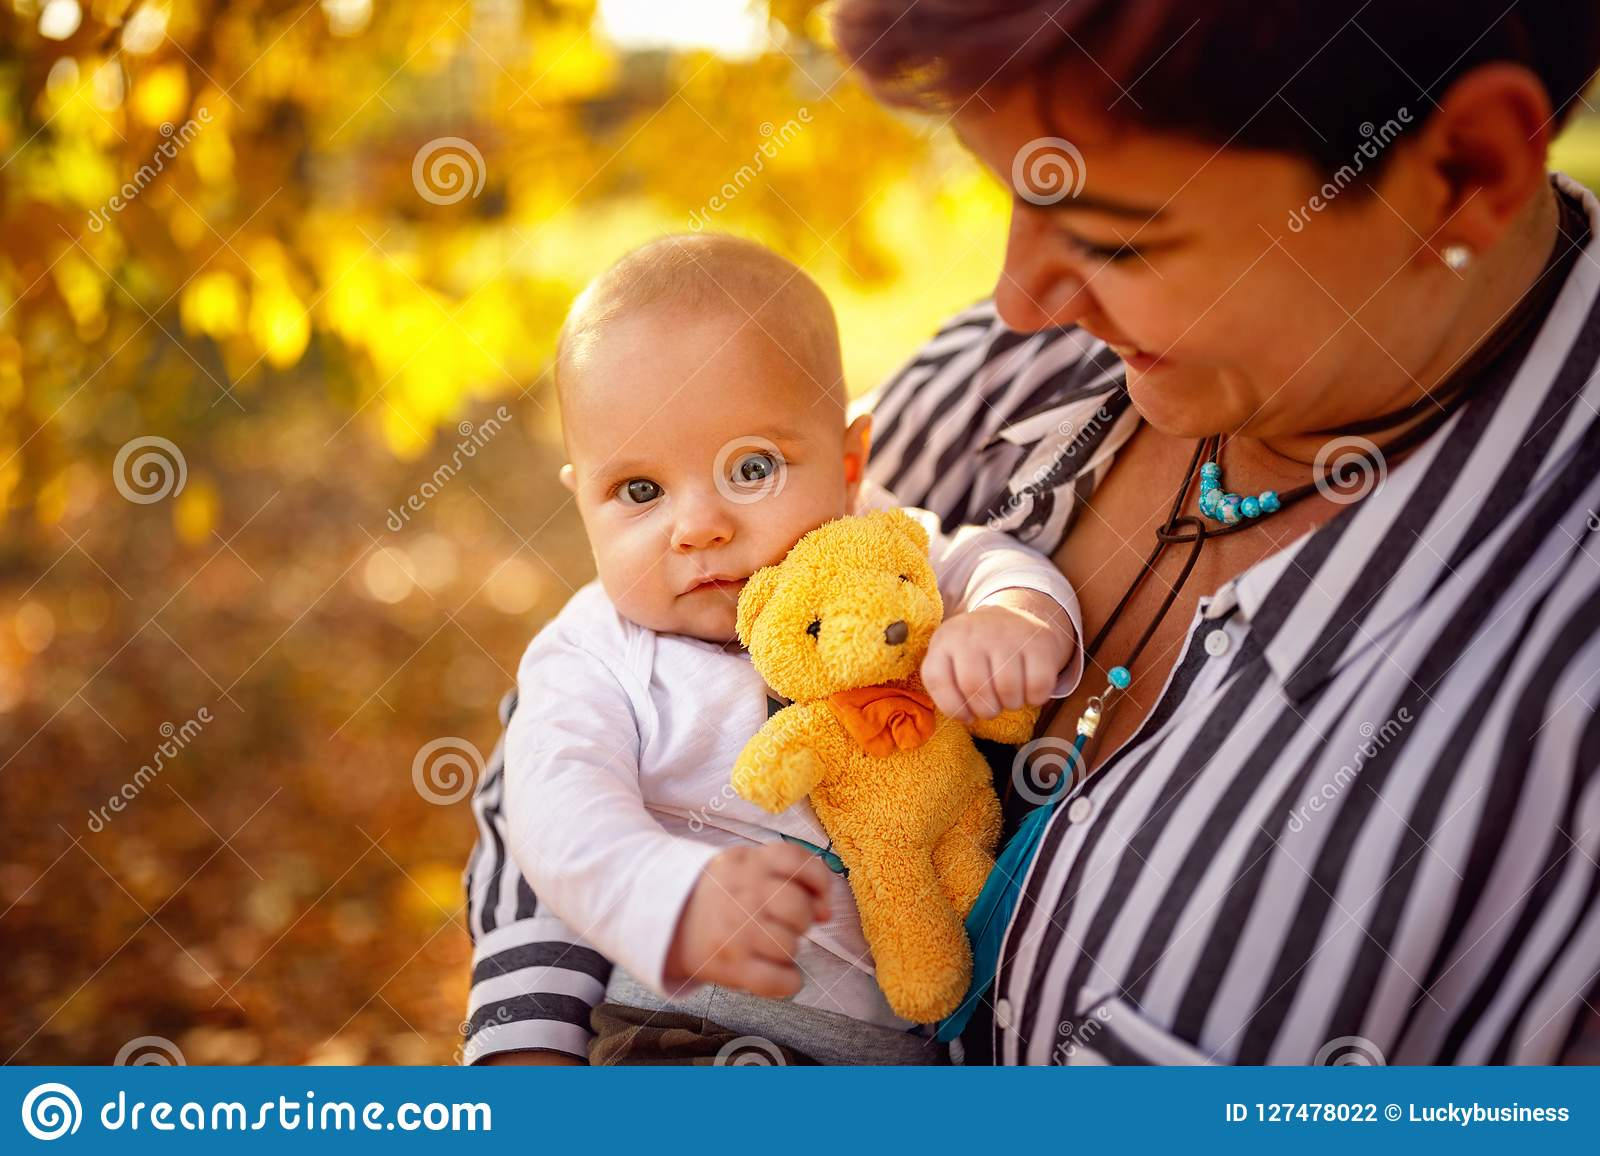 Happy family - Young mother and baby boy in autumn park